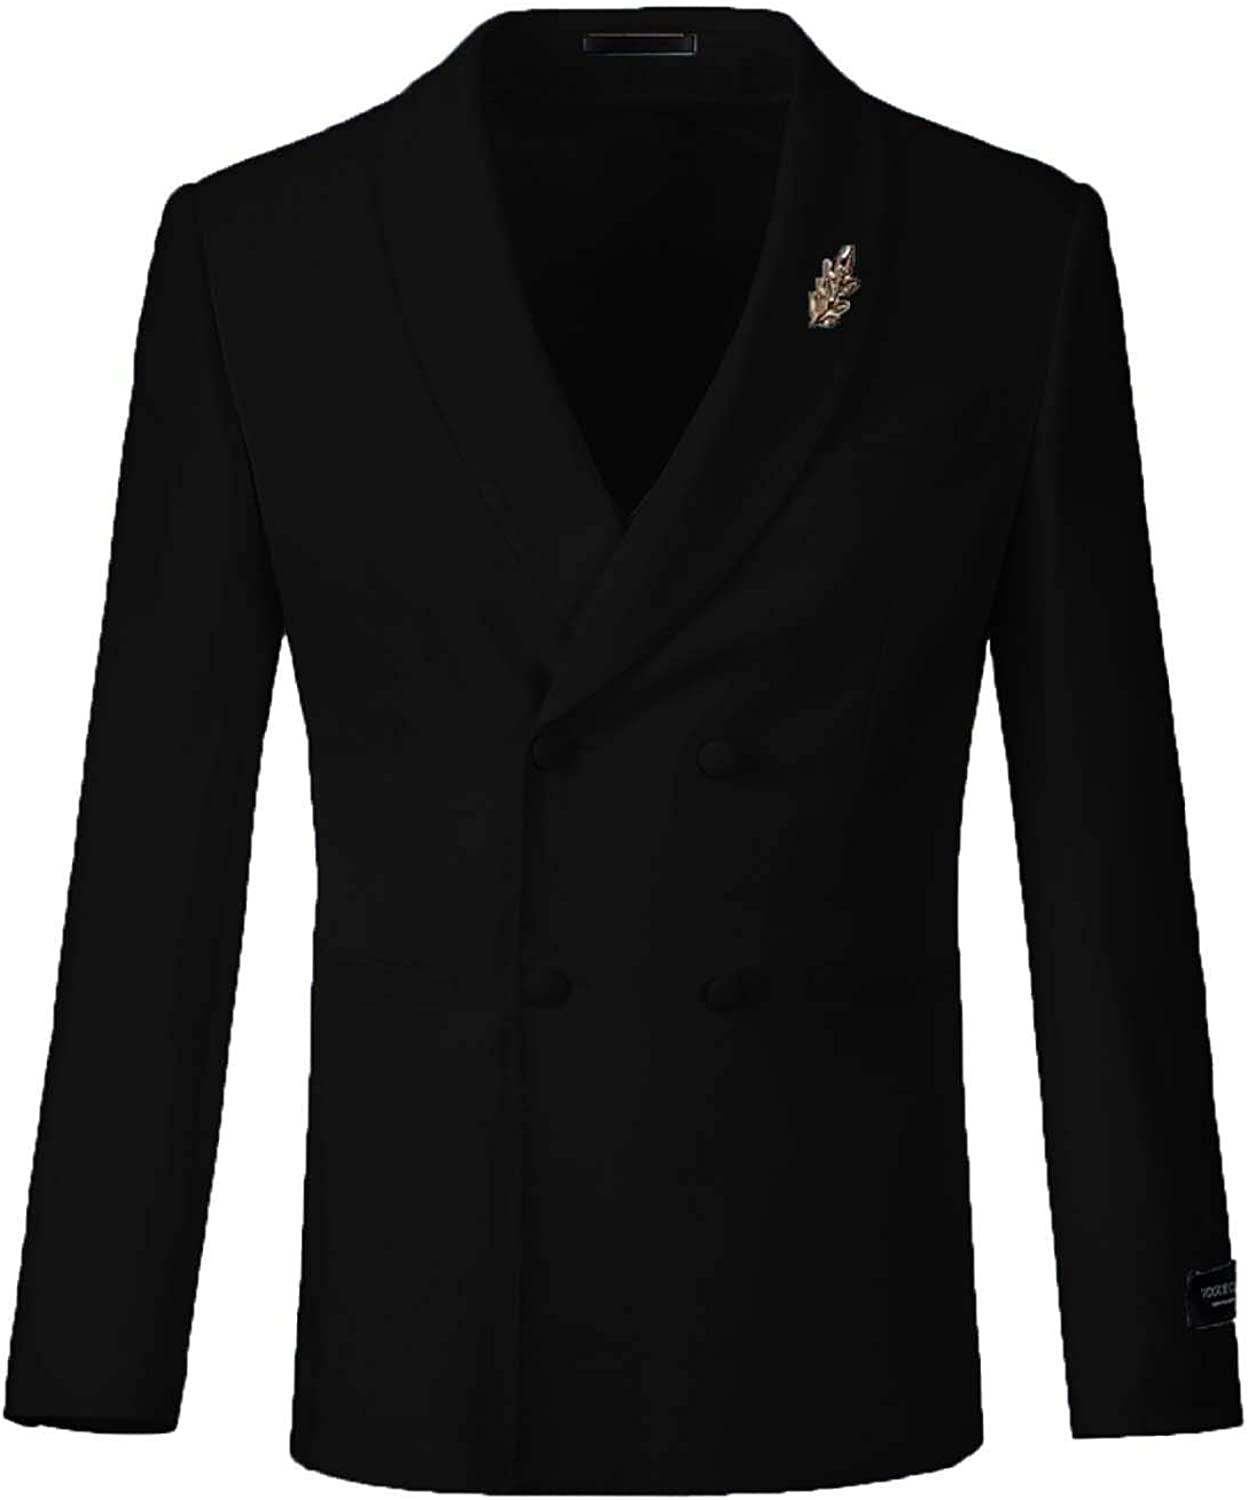 Max 85% OFF FAIOKAVER Men's Suits Double Breasted Tuxedo Formal Fit Regular Inexpensive